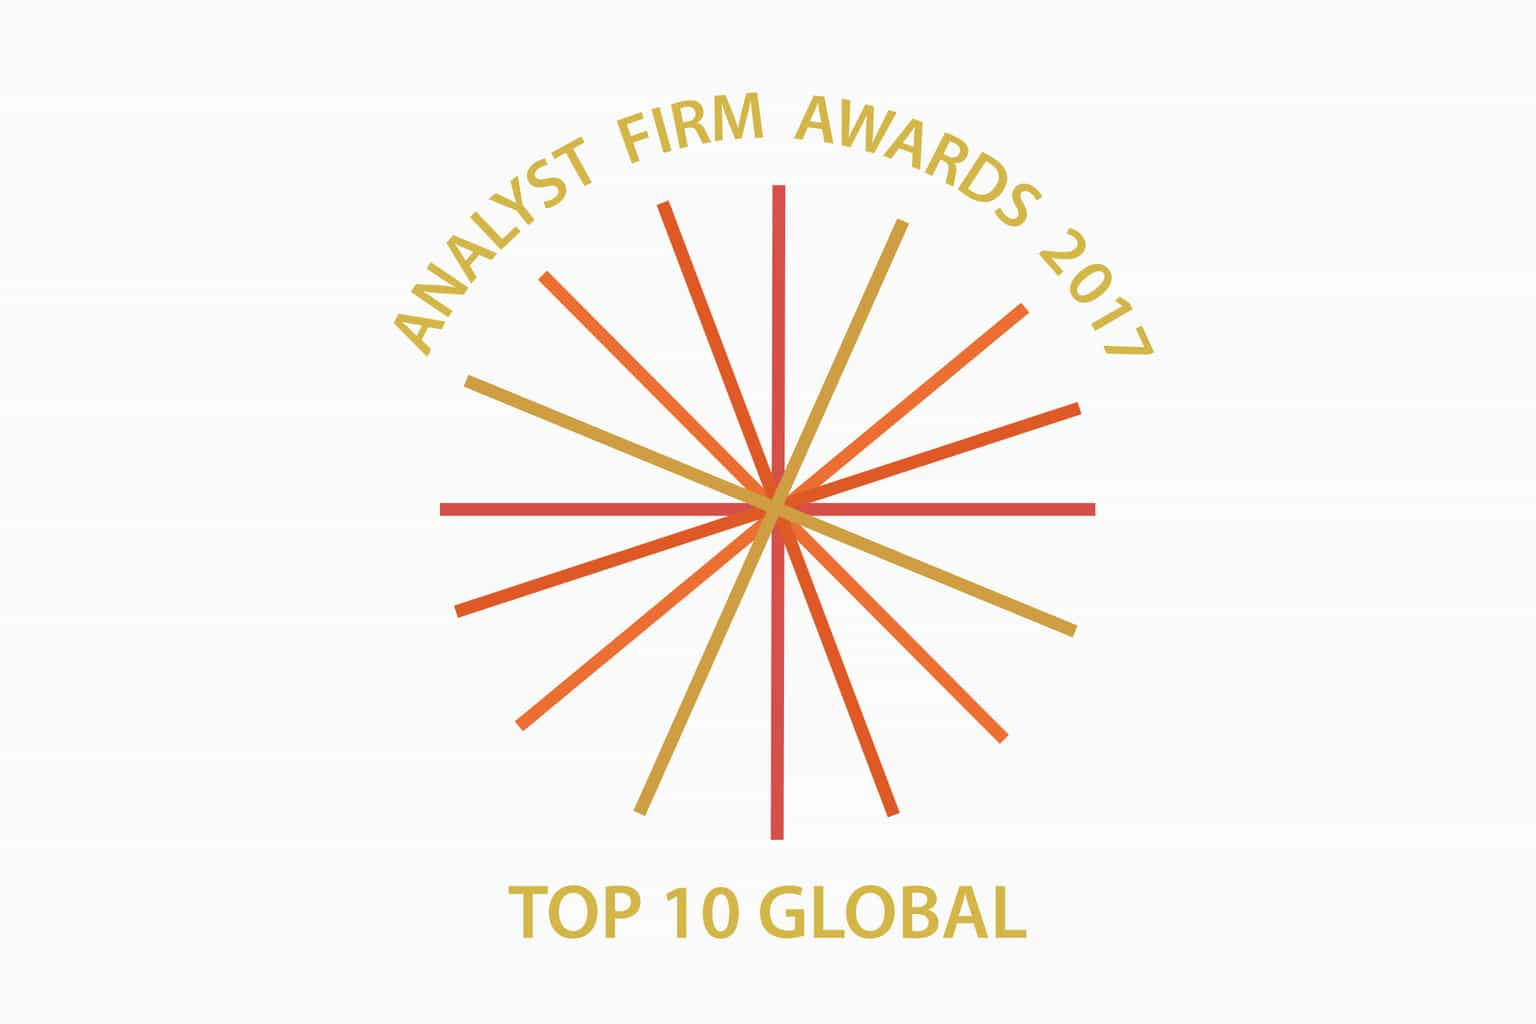 Save the date for our Analyst Firm Awards